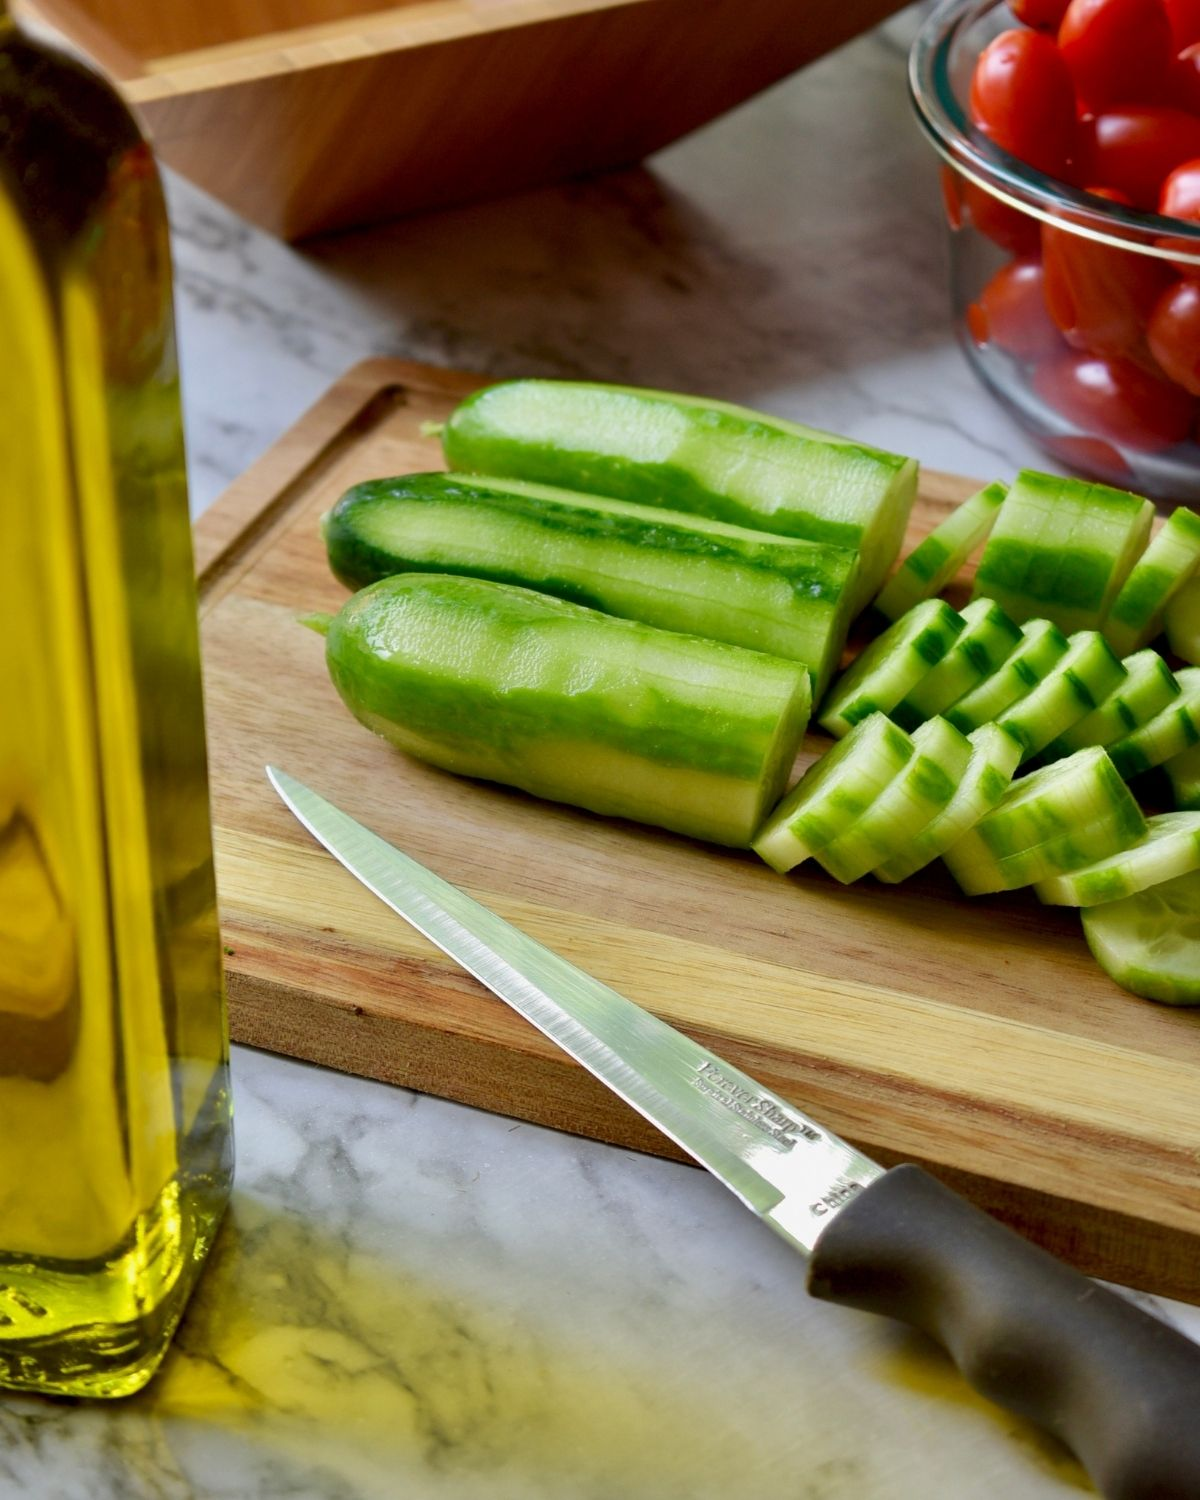 miniature cucumbers peeled into stripes and then sliced on a wooden cutting board  next to a bowl of tomatoes with a container of olive oil on the counter